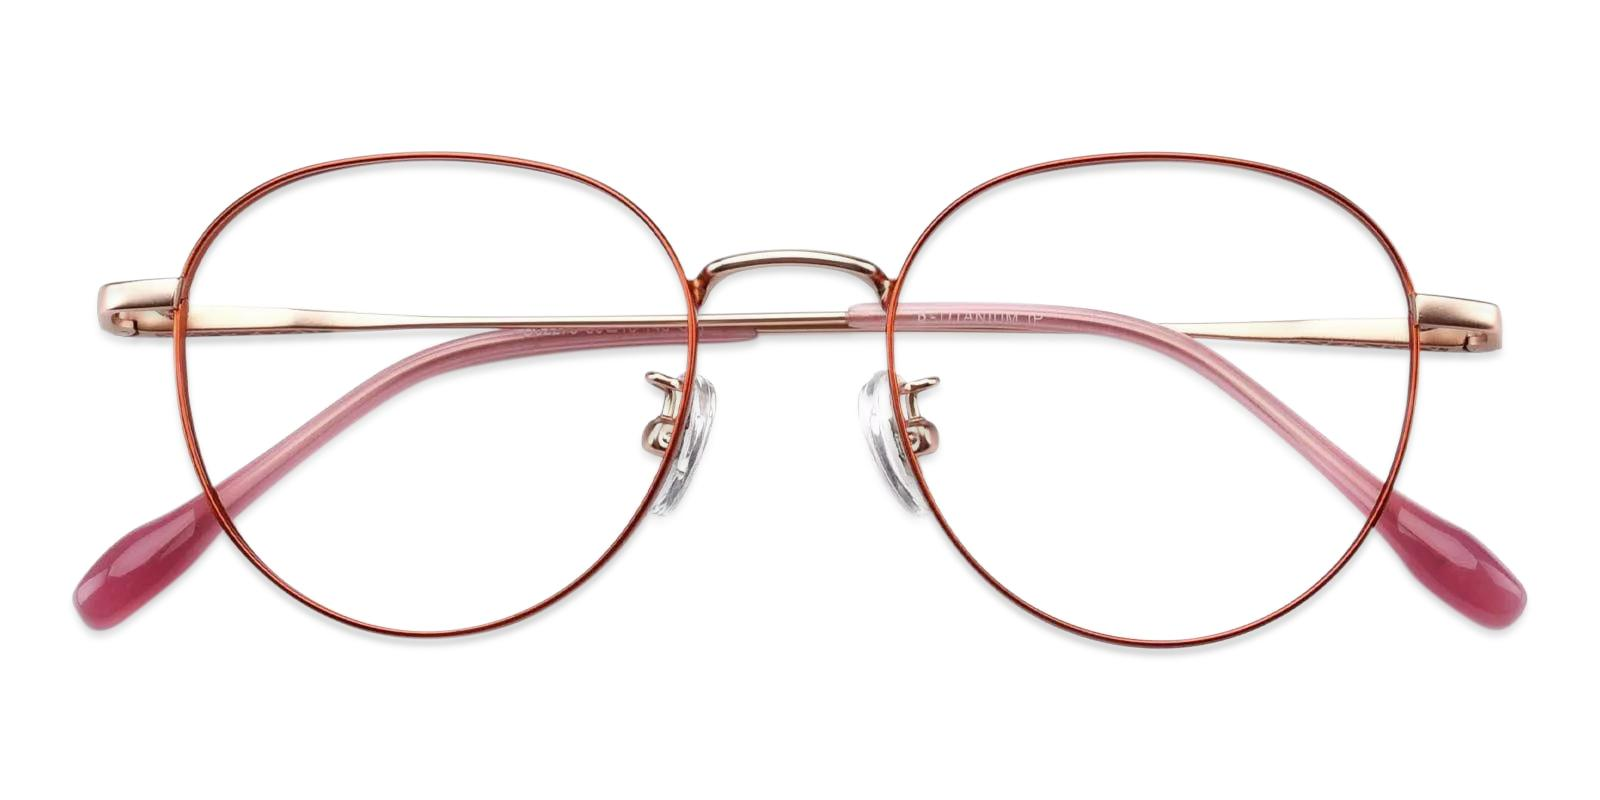 Randy Orange Metal Eyeglasses , Fashion , NosePads Frames from ABBE Glasses